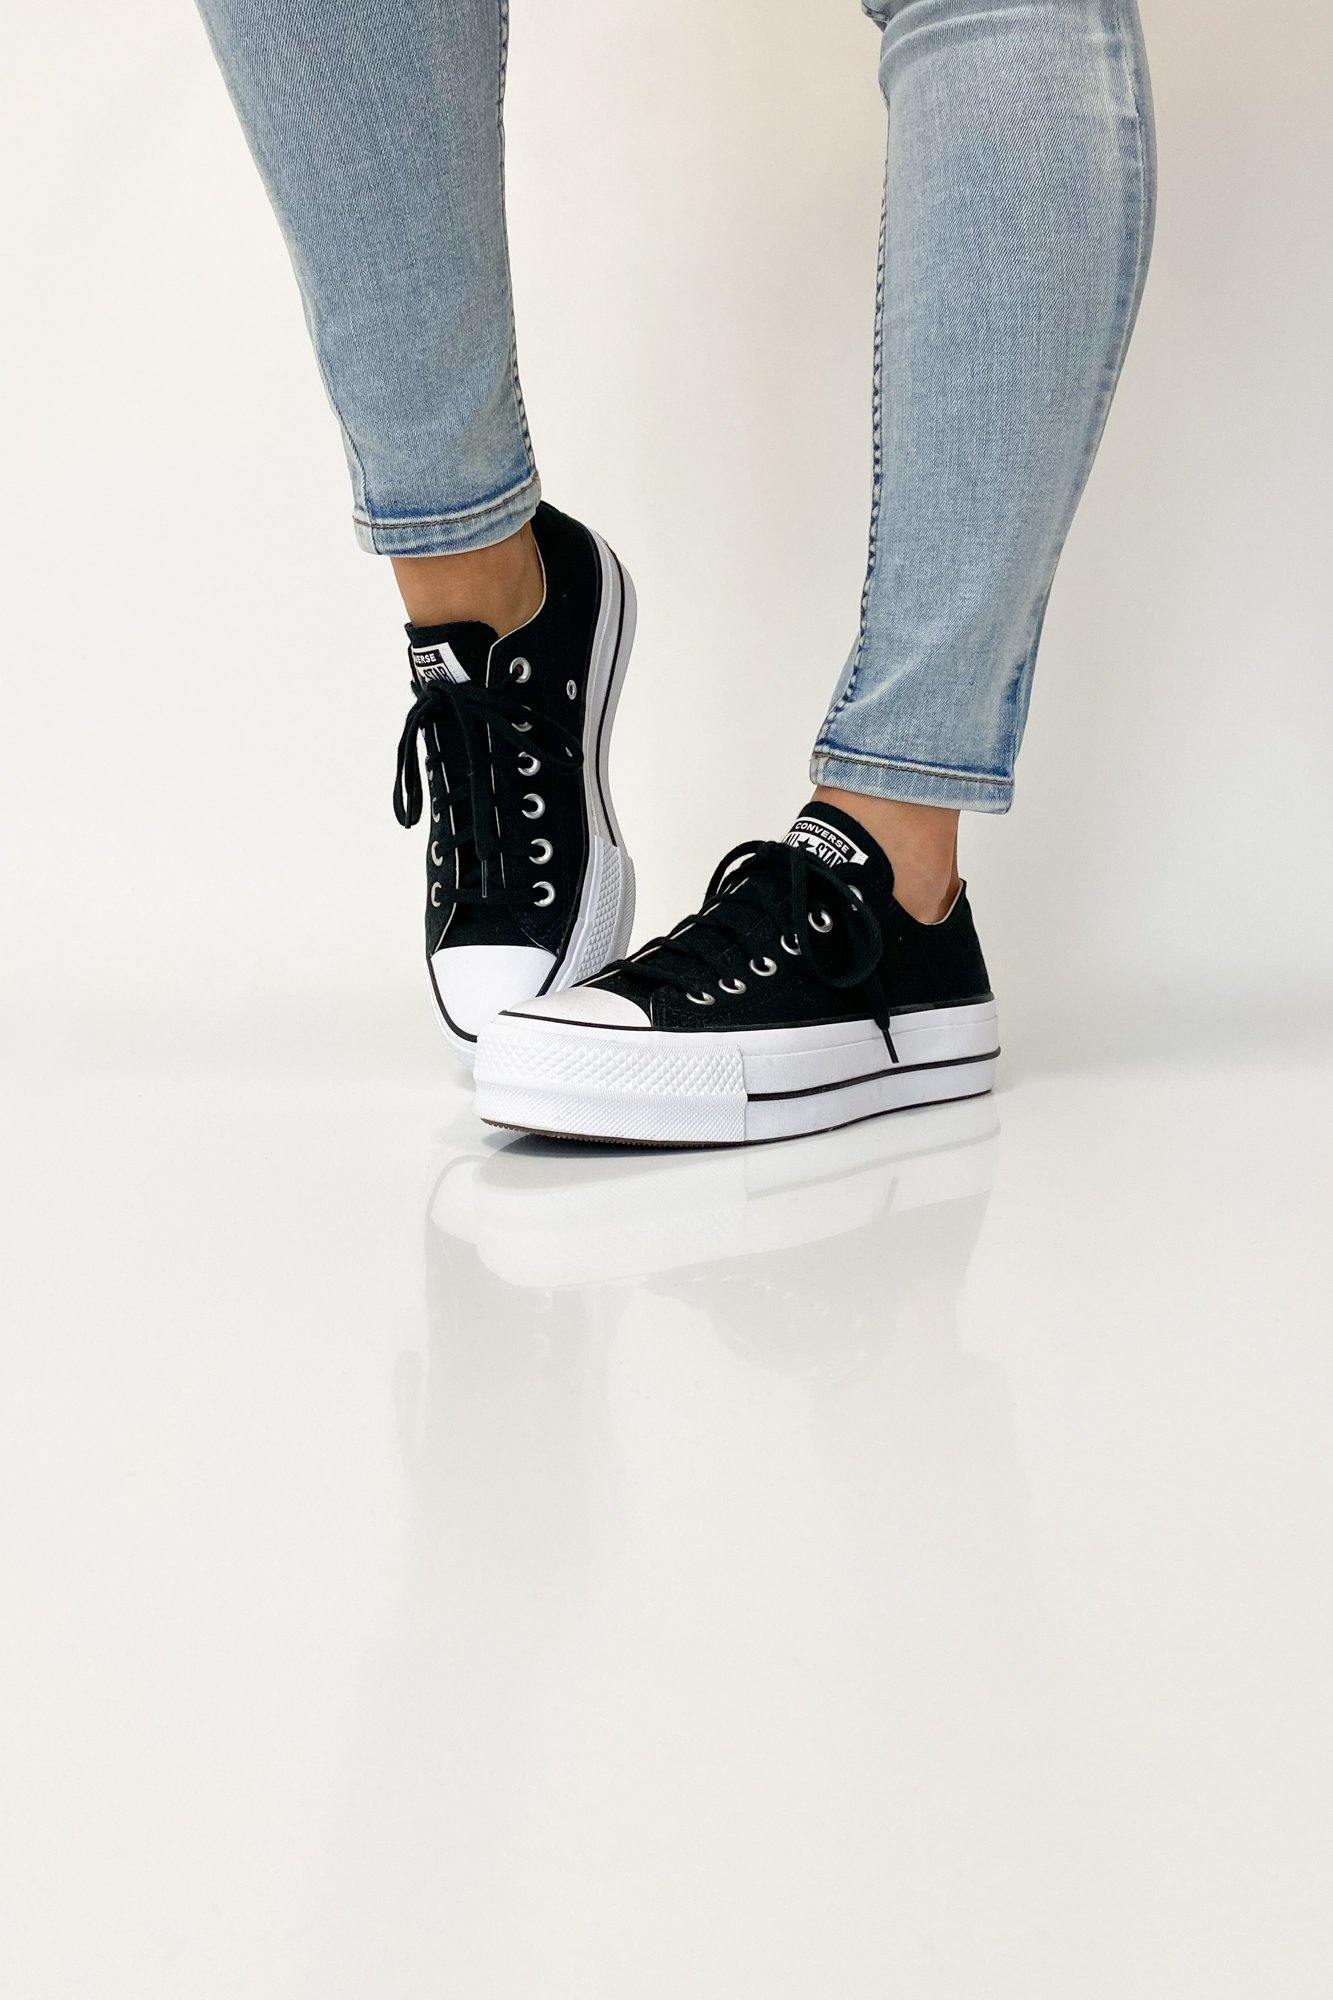 Converse Chuck Taylor All Star Lift Low Black